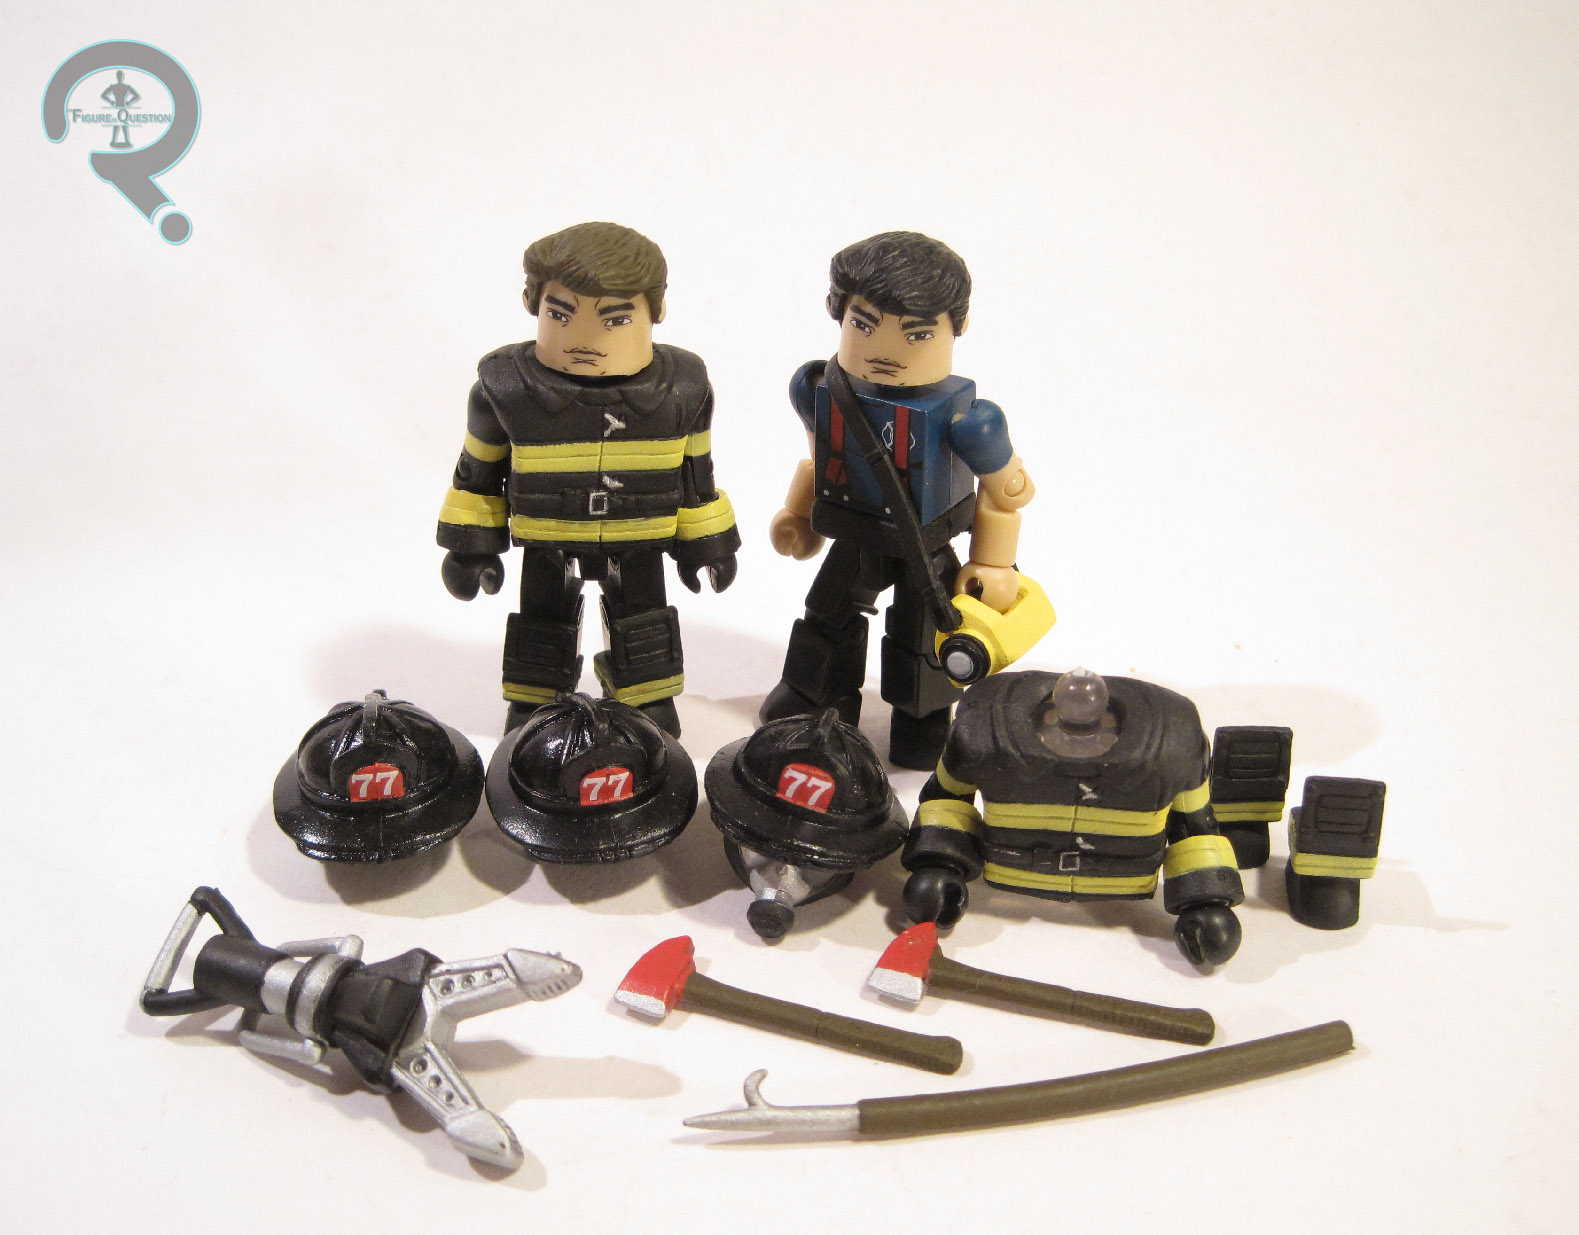 MAX Minimates Elite Heroes Series 1 Fire Fighters Fire Chief 2-Pack